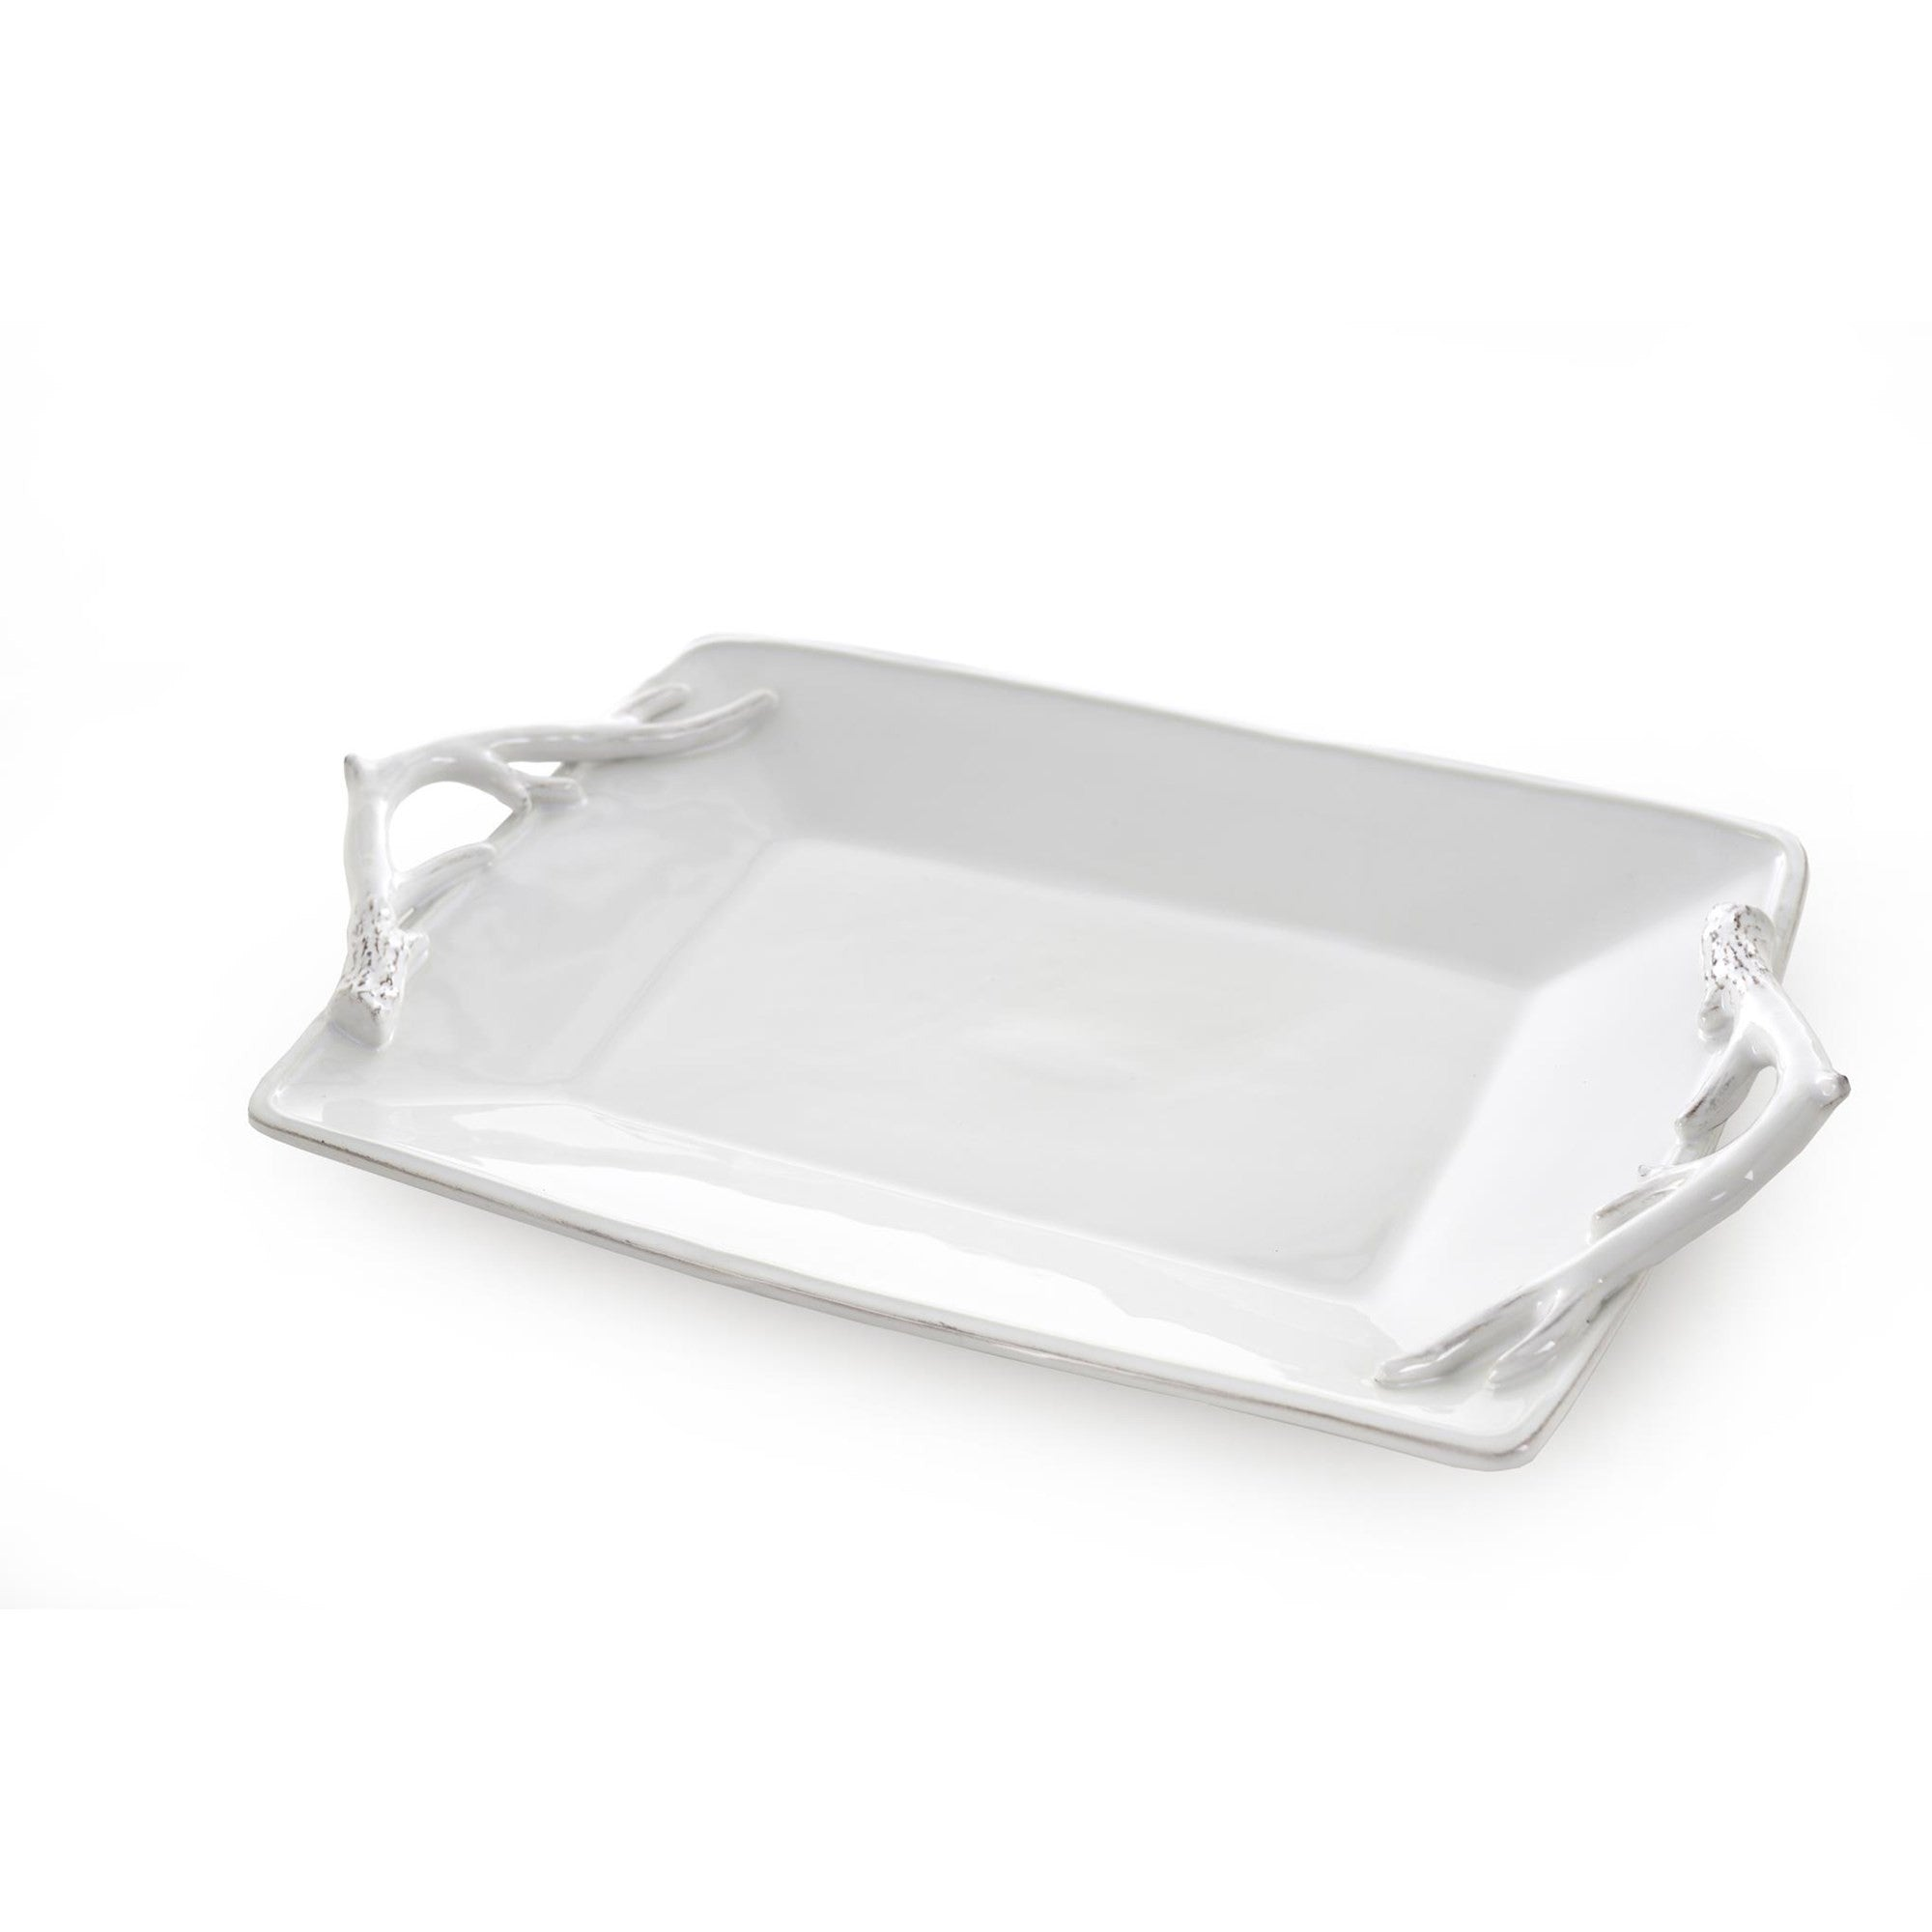 White Antler Rectangular Platter, IT-Indaba Trading, Putti Fine Furnishings